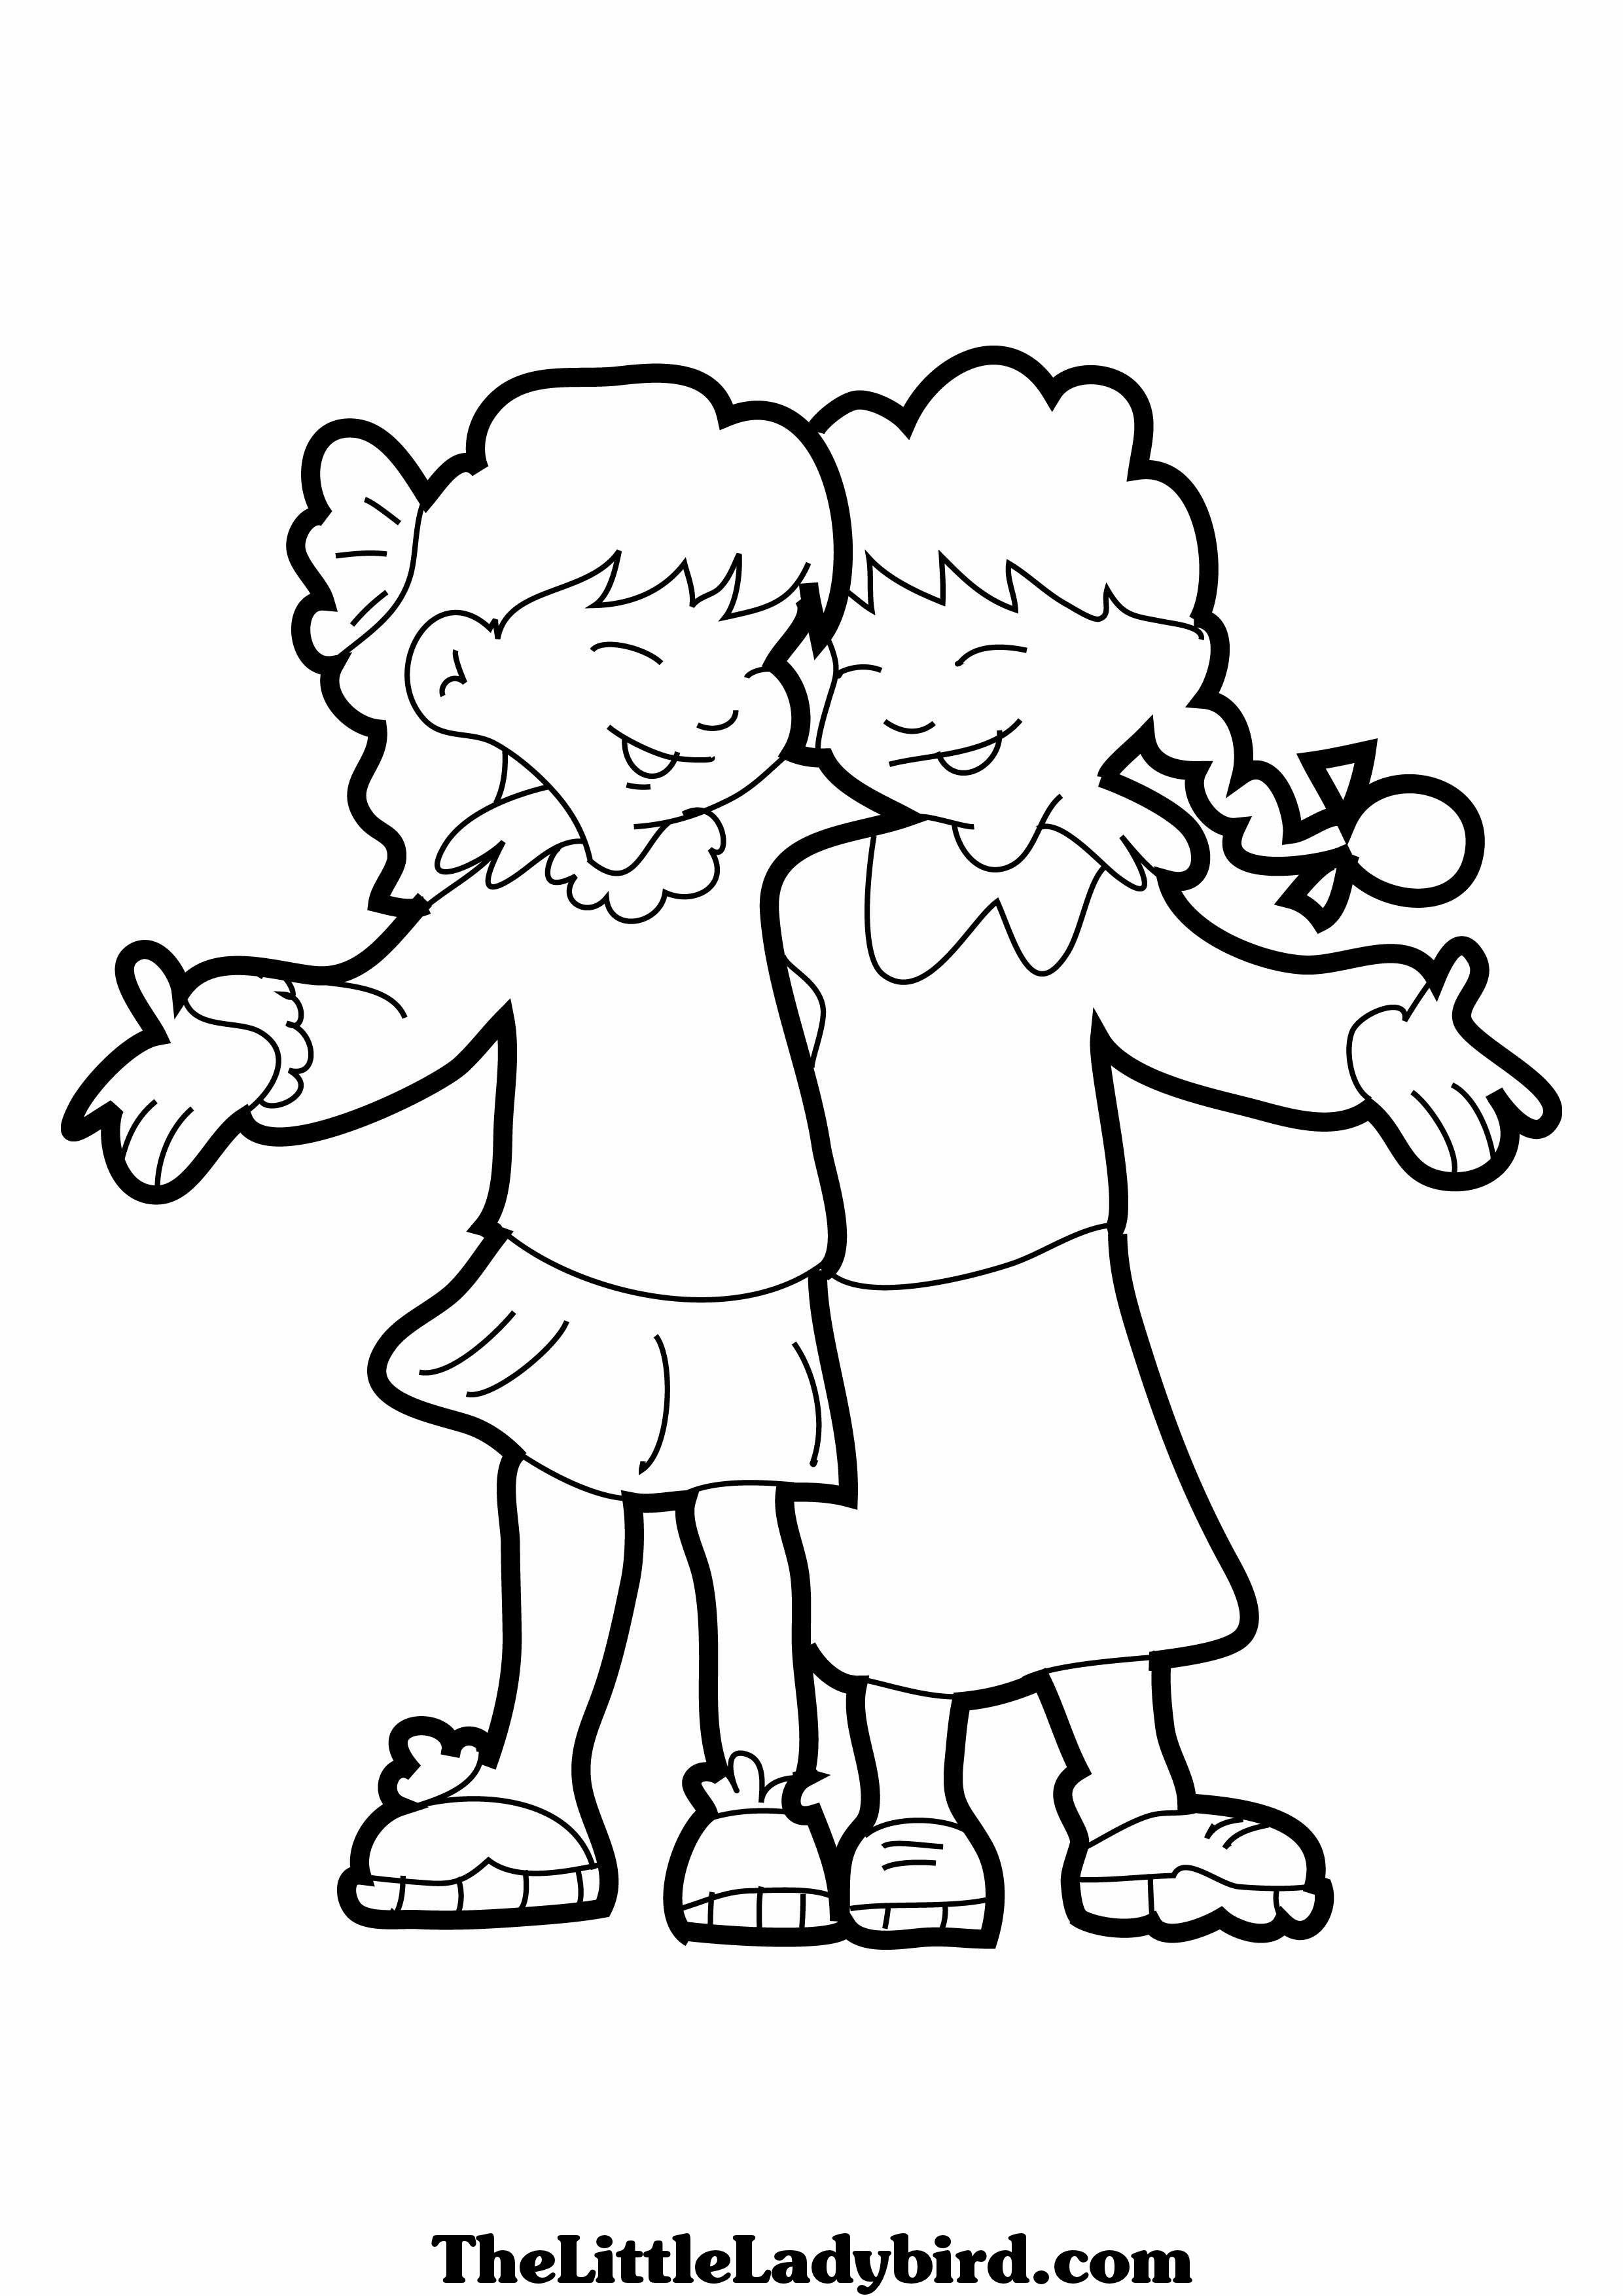 Bff Coloring Sheets For Girls  Bff Coloring Pages For Girls To Color grig3